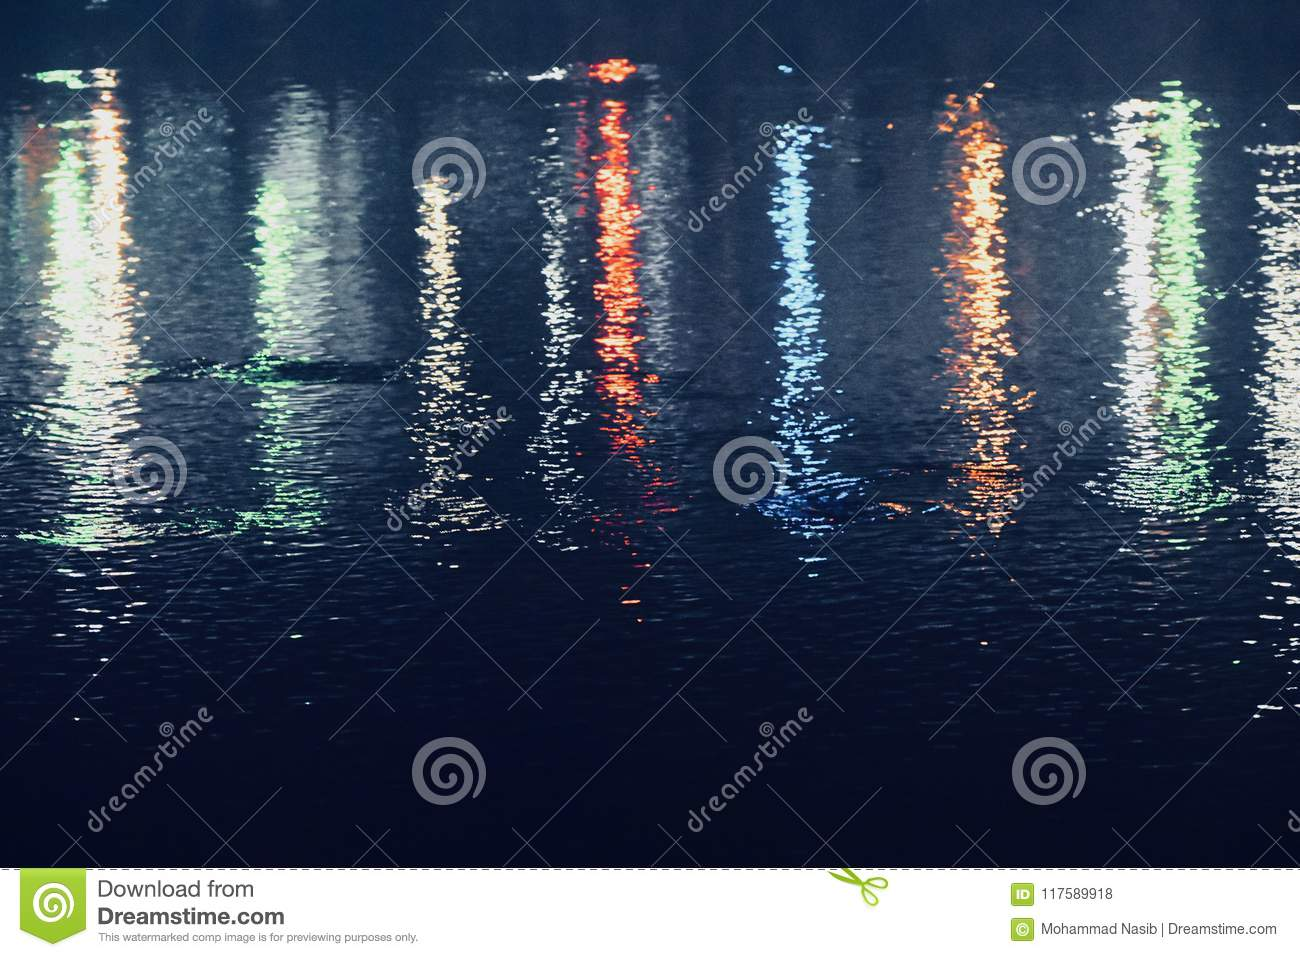 Download Colourful Street Lights Reflection In Water Blurred Photograph Stock Photo - Image of night, stylish: 117589918